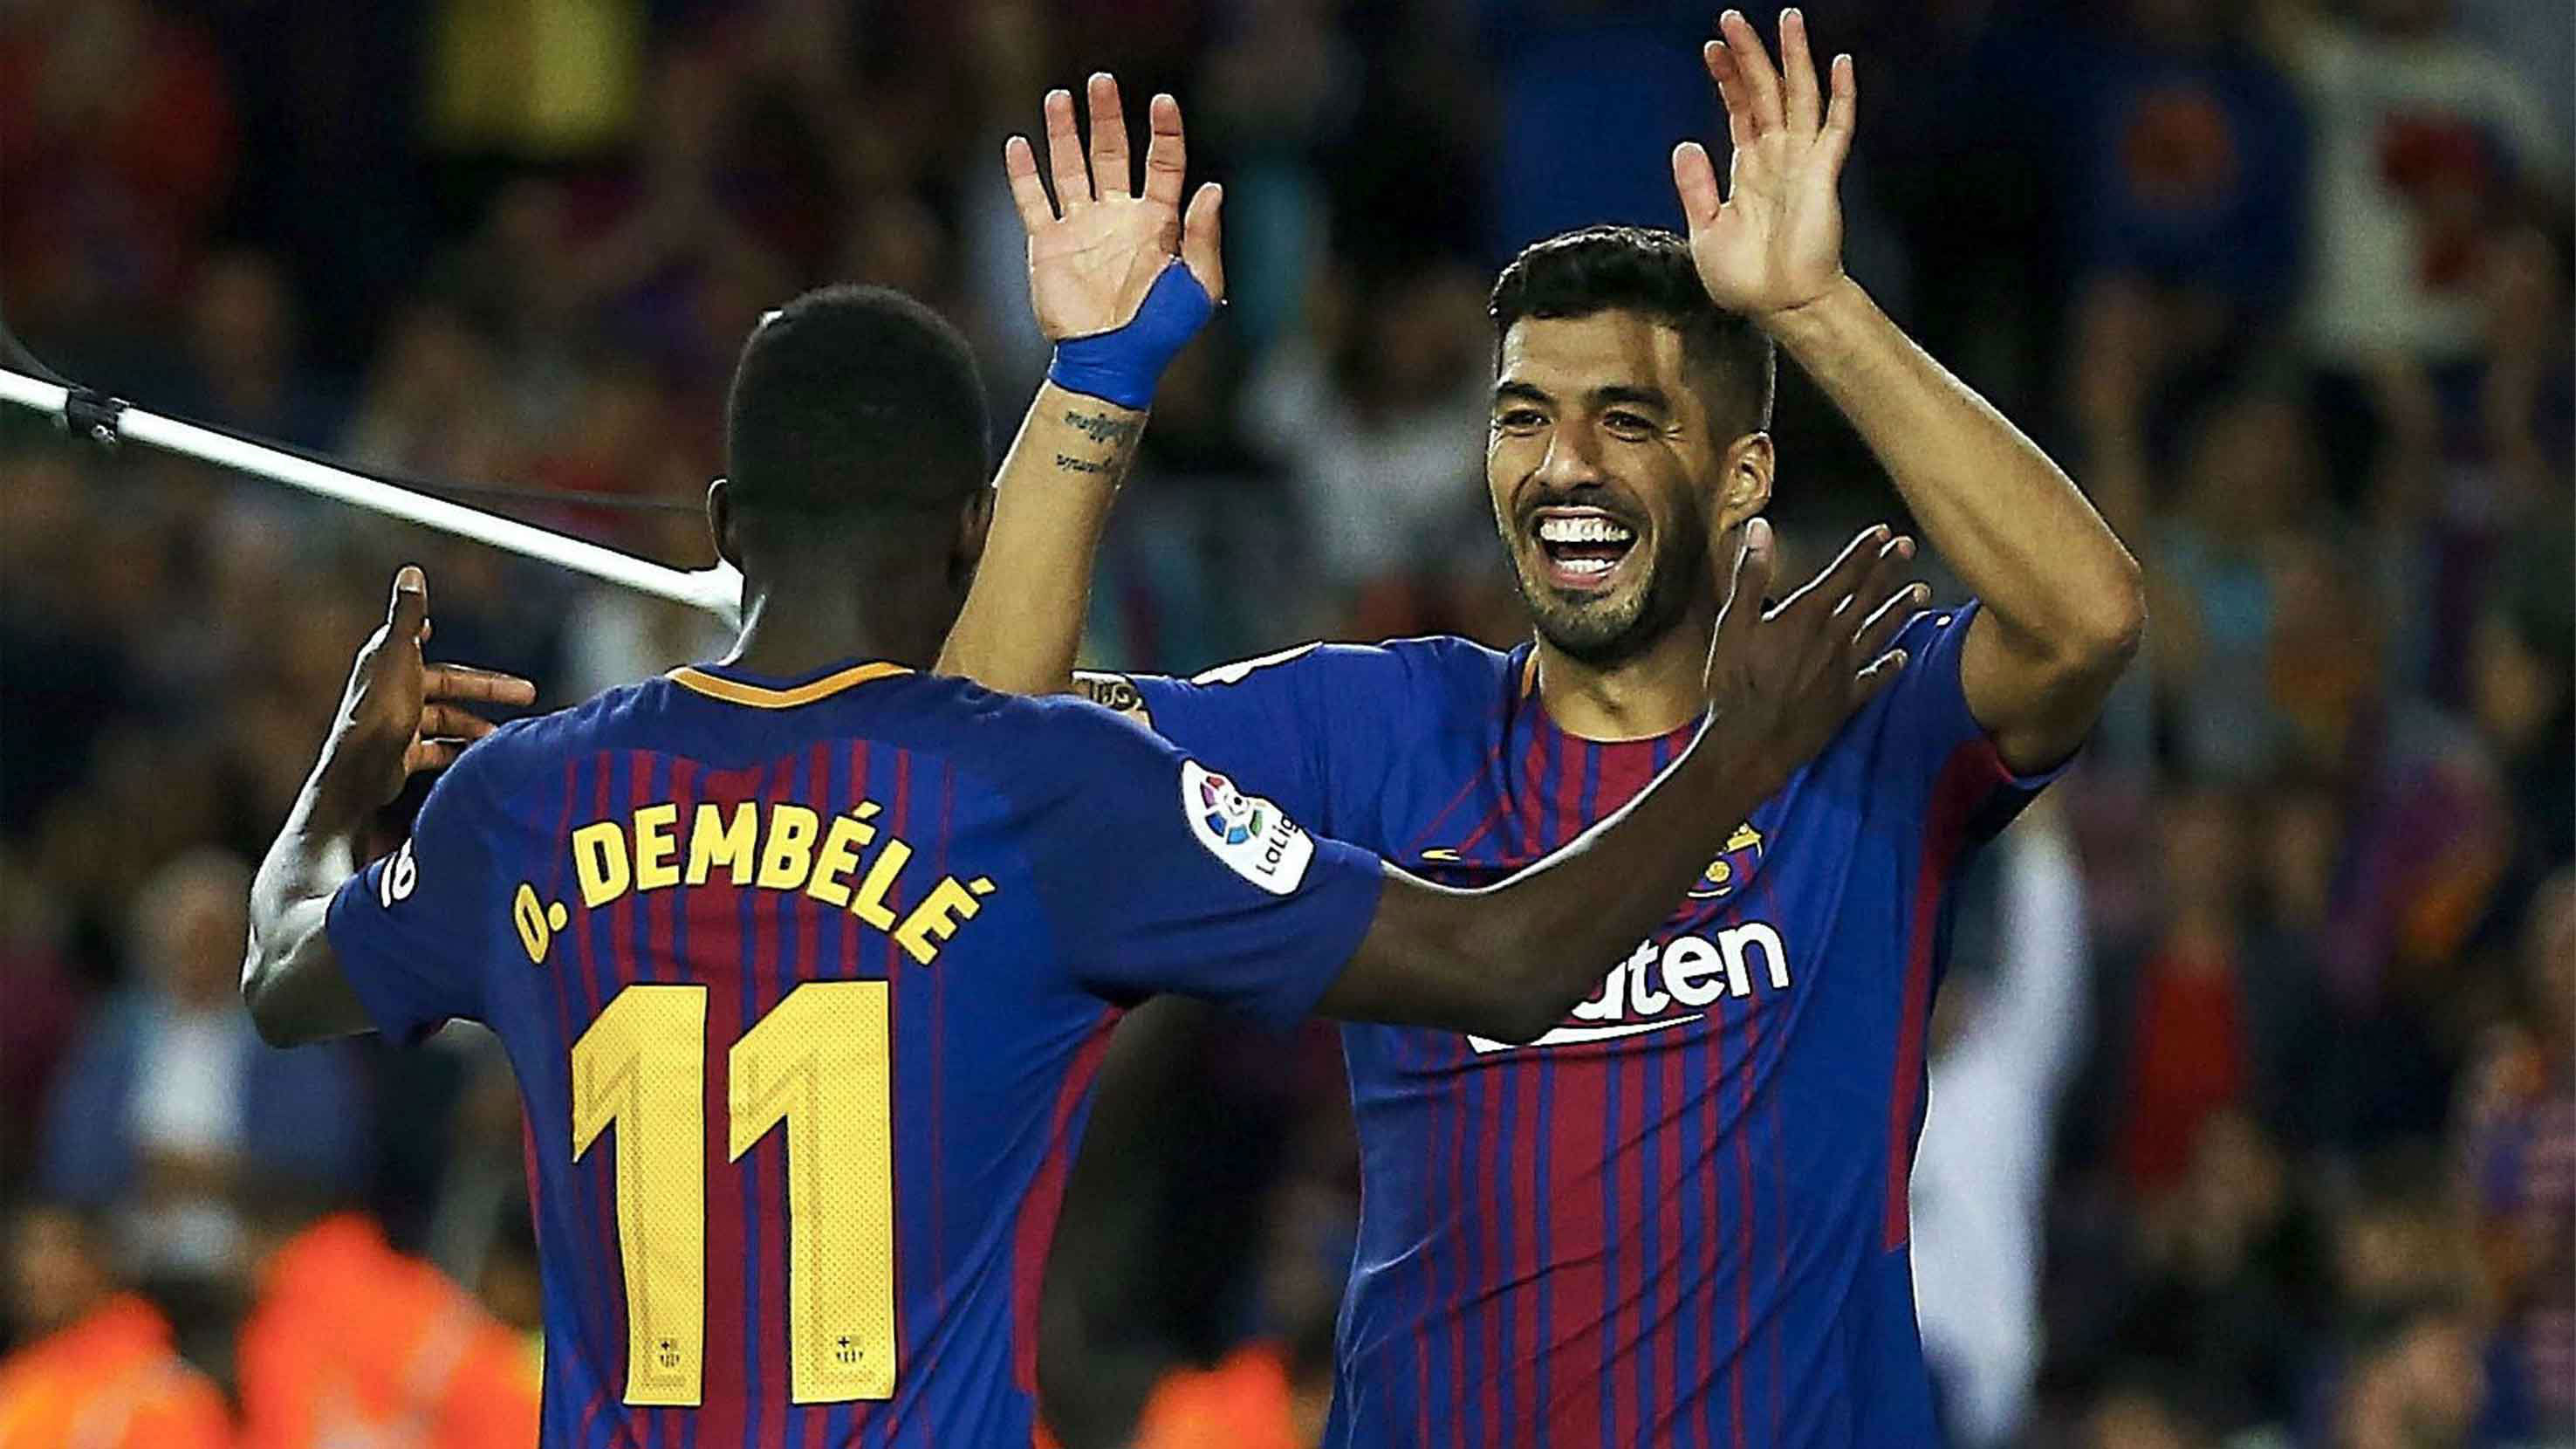 Ousmane Dembele sets up Luis Suarez for his first assist